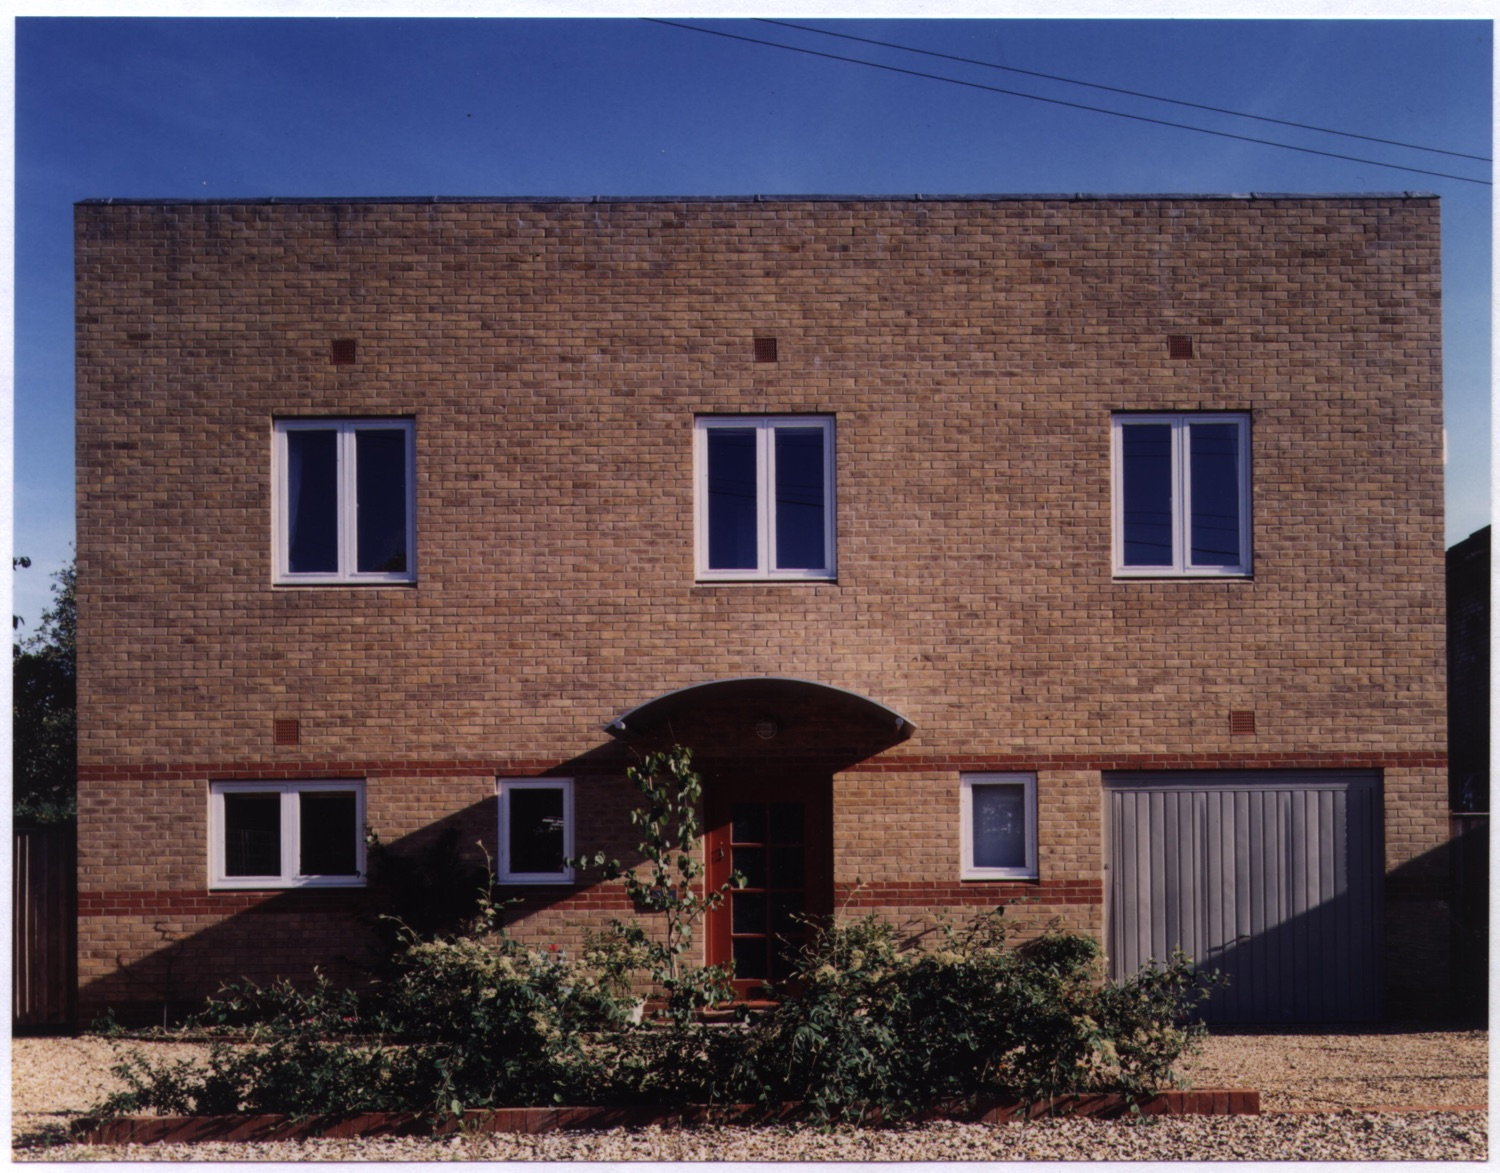 Cambridge House, 1994